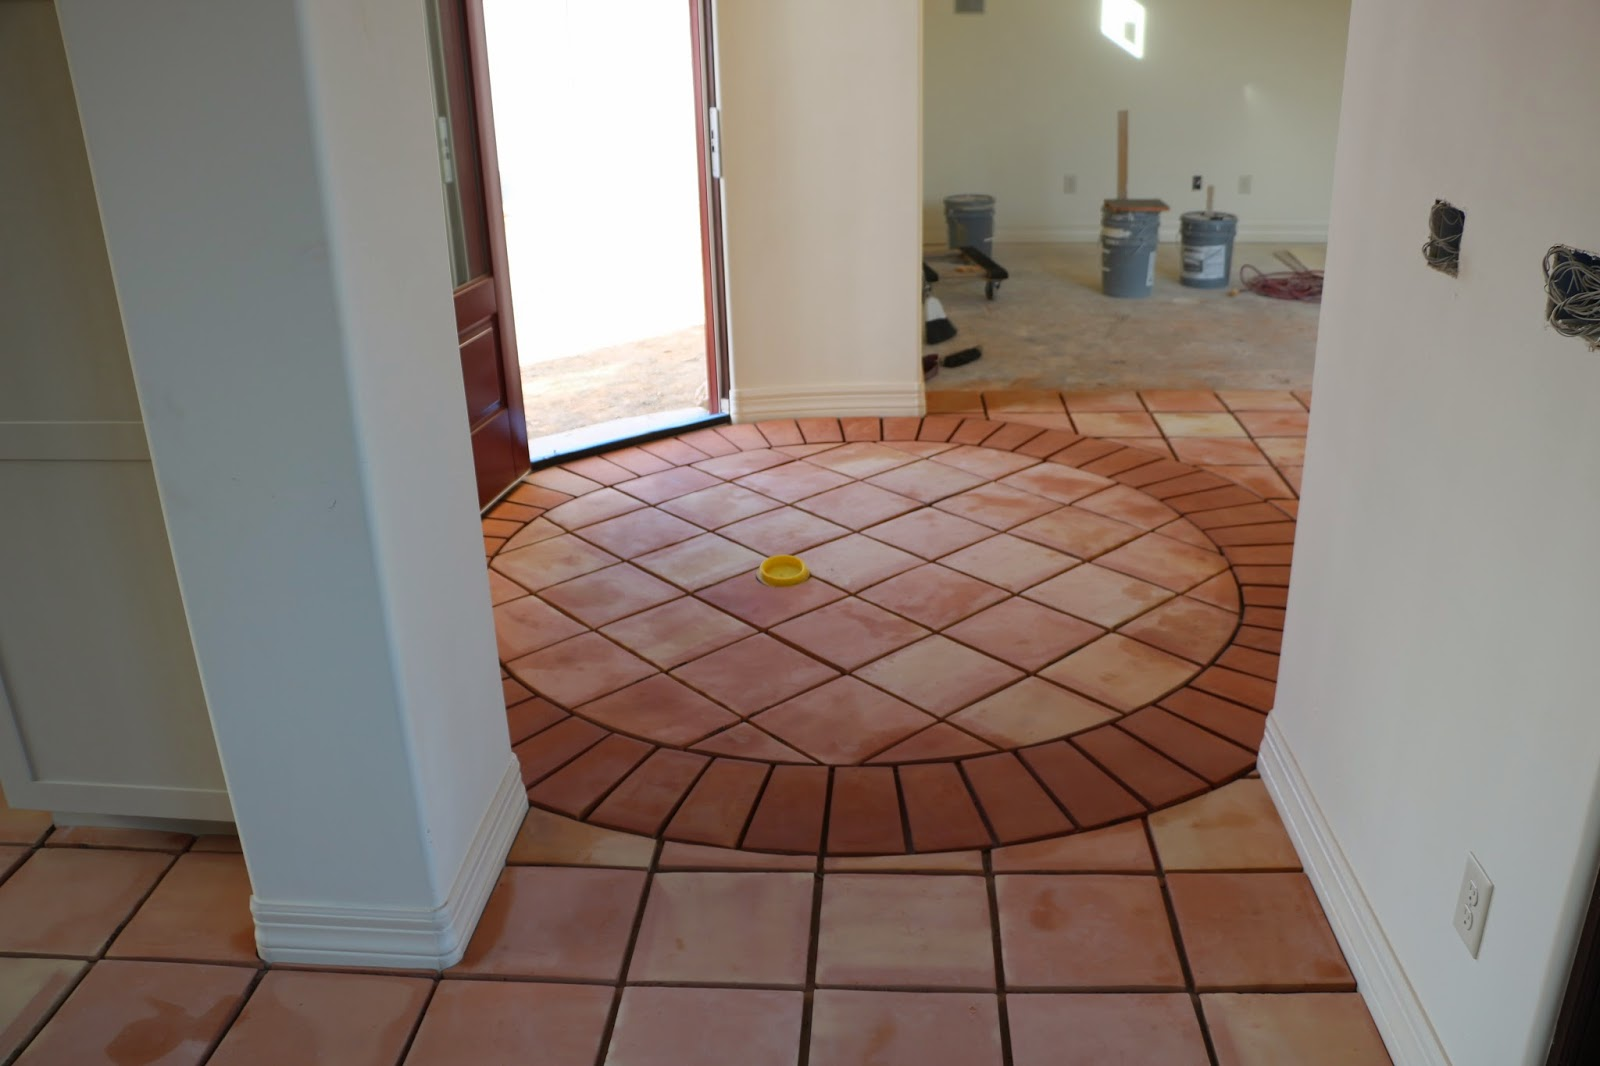 saltillo tiles in circle room, terra cotta tiles in a circle